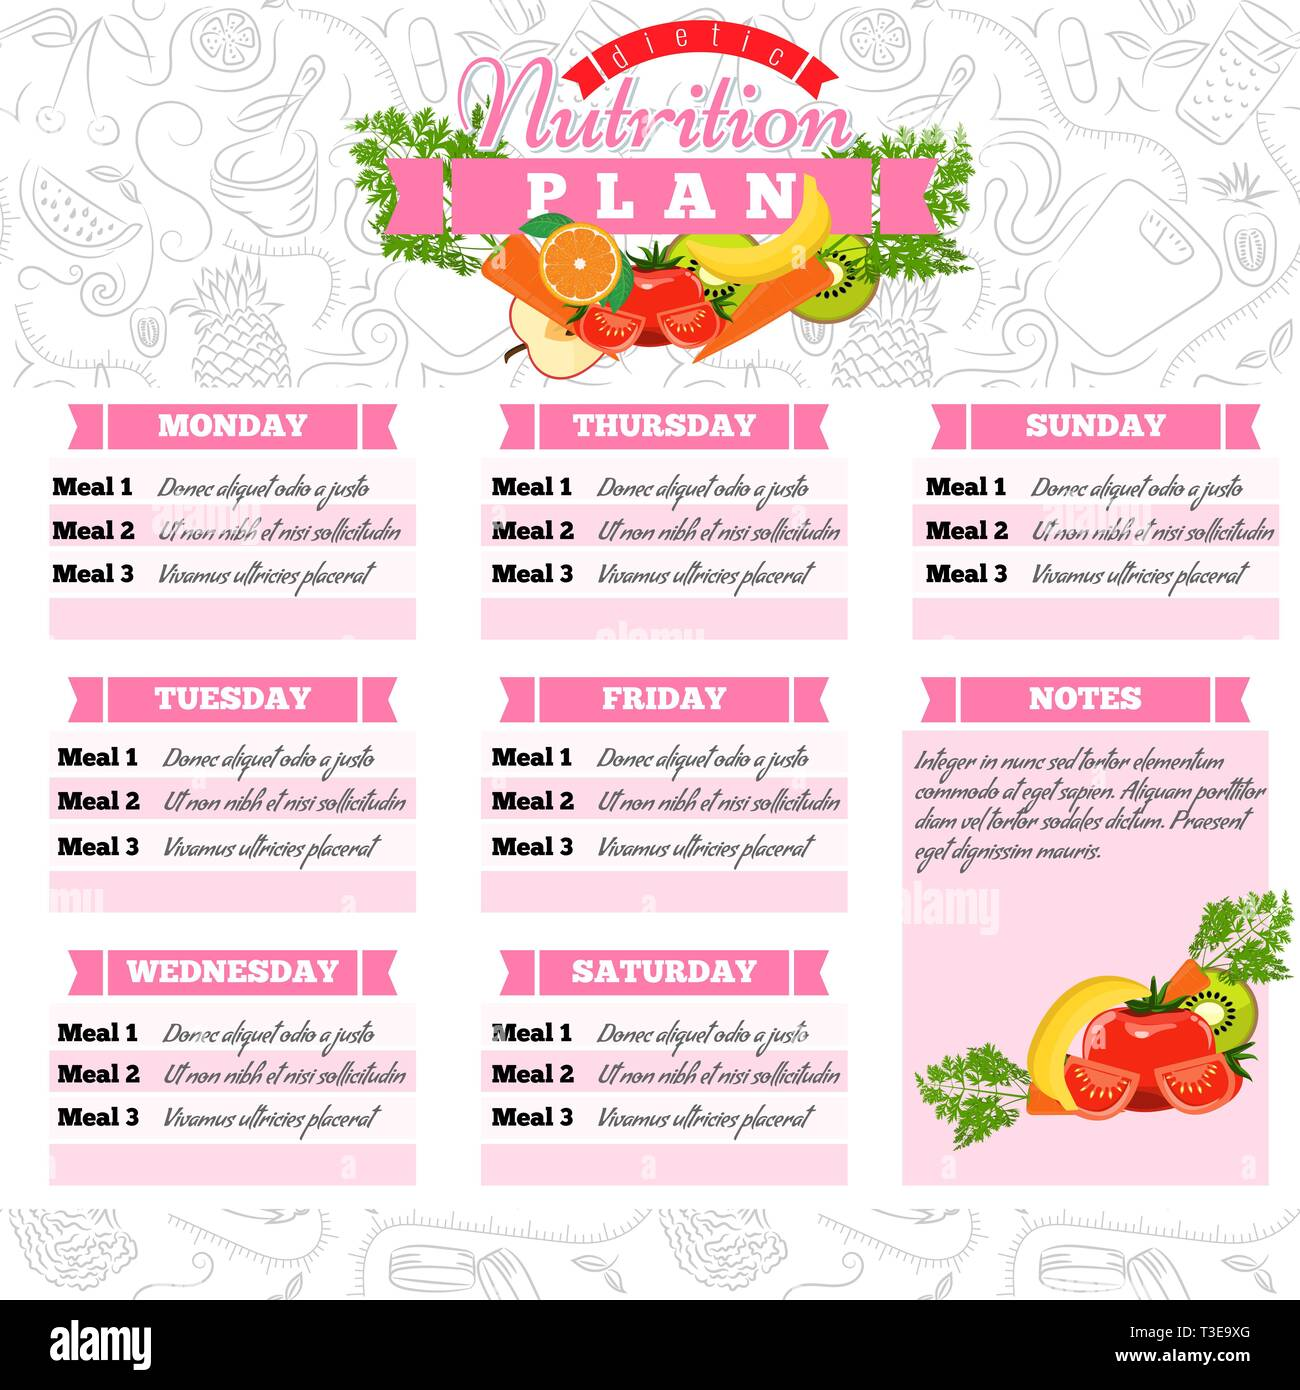 Healthy Diet Planning Healthy Food And Weekly Meal Plan Schedule Dietic Timetable Vector Illustration Stock Vector Image Art Alamy